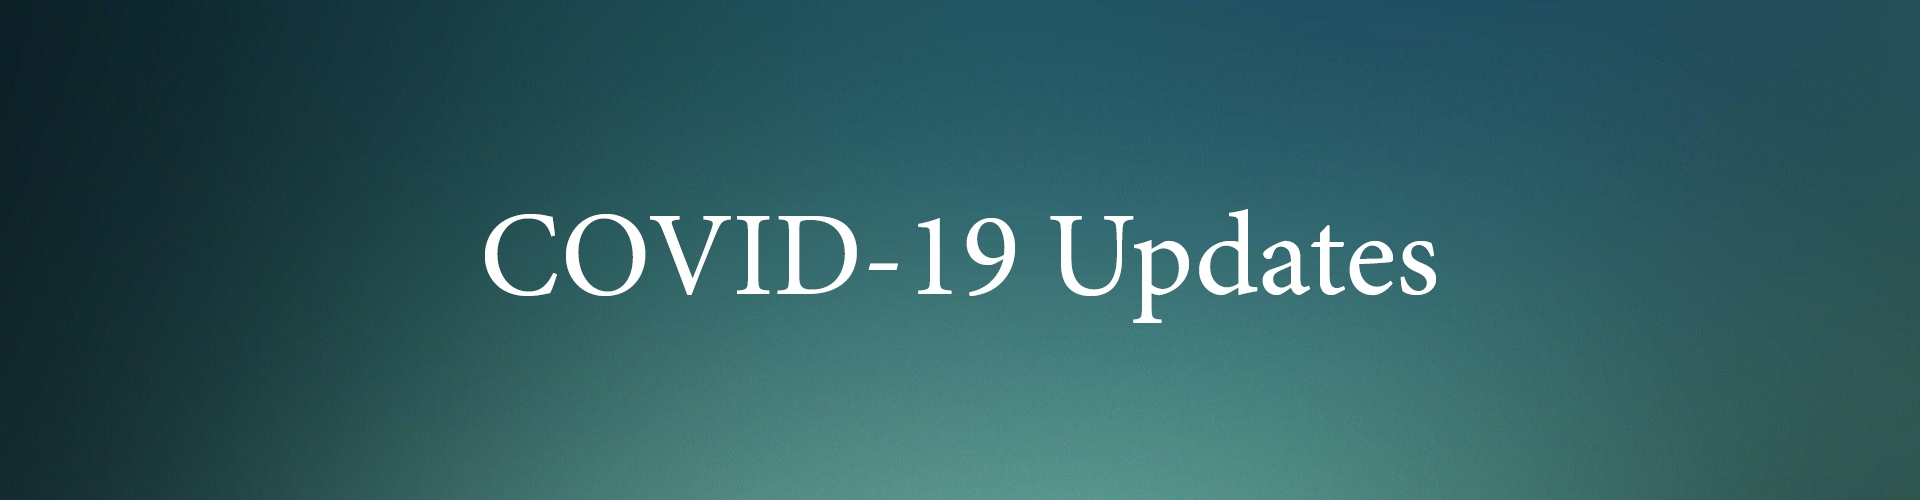 Covid-19 Updates Banner